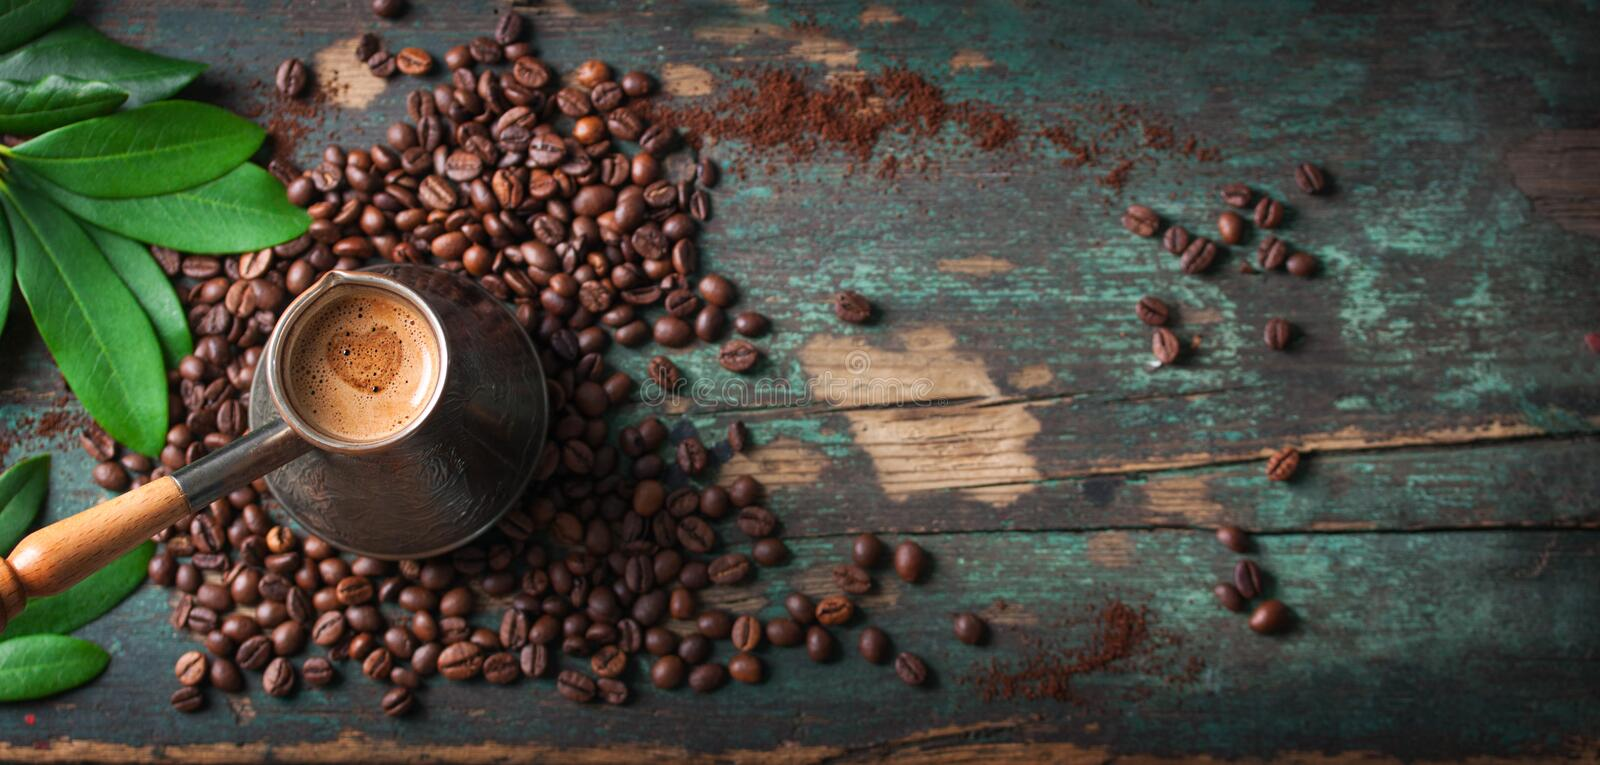 Hot coffee in a coffeepot or turk on a wooden background with coffee leaves and beans, horizontal with copy space stock image